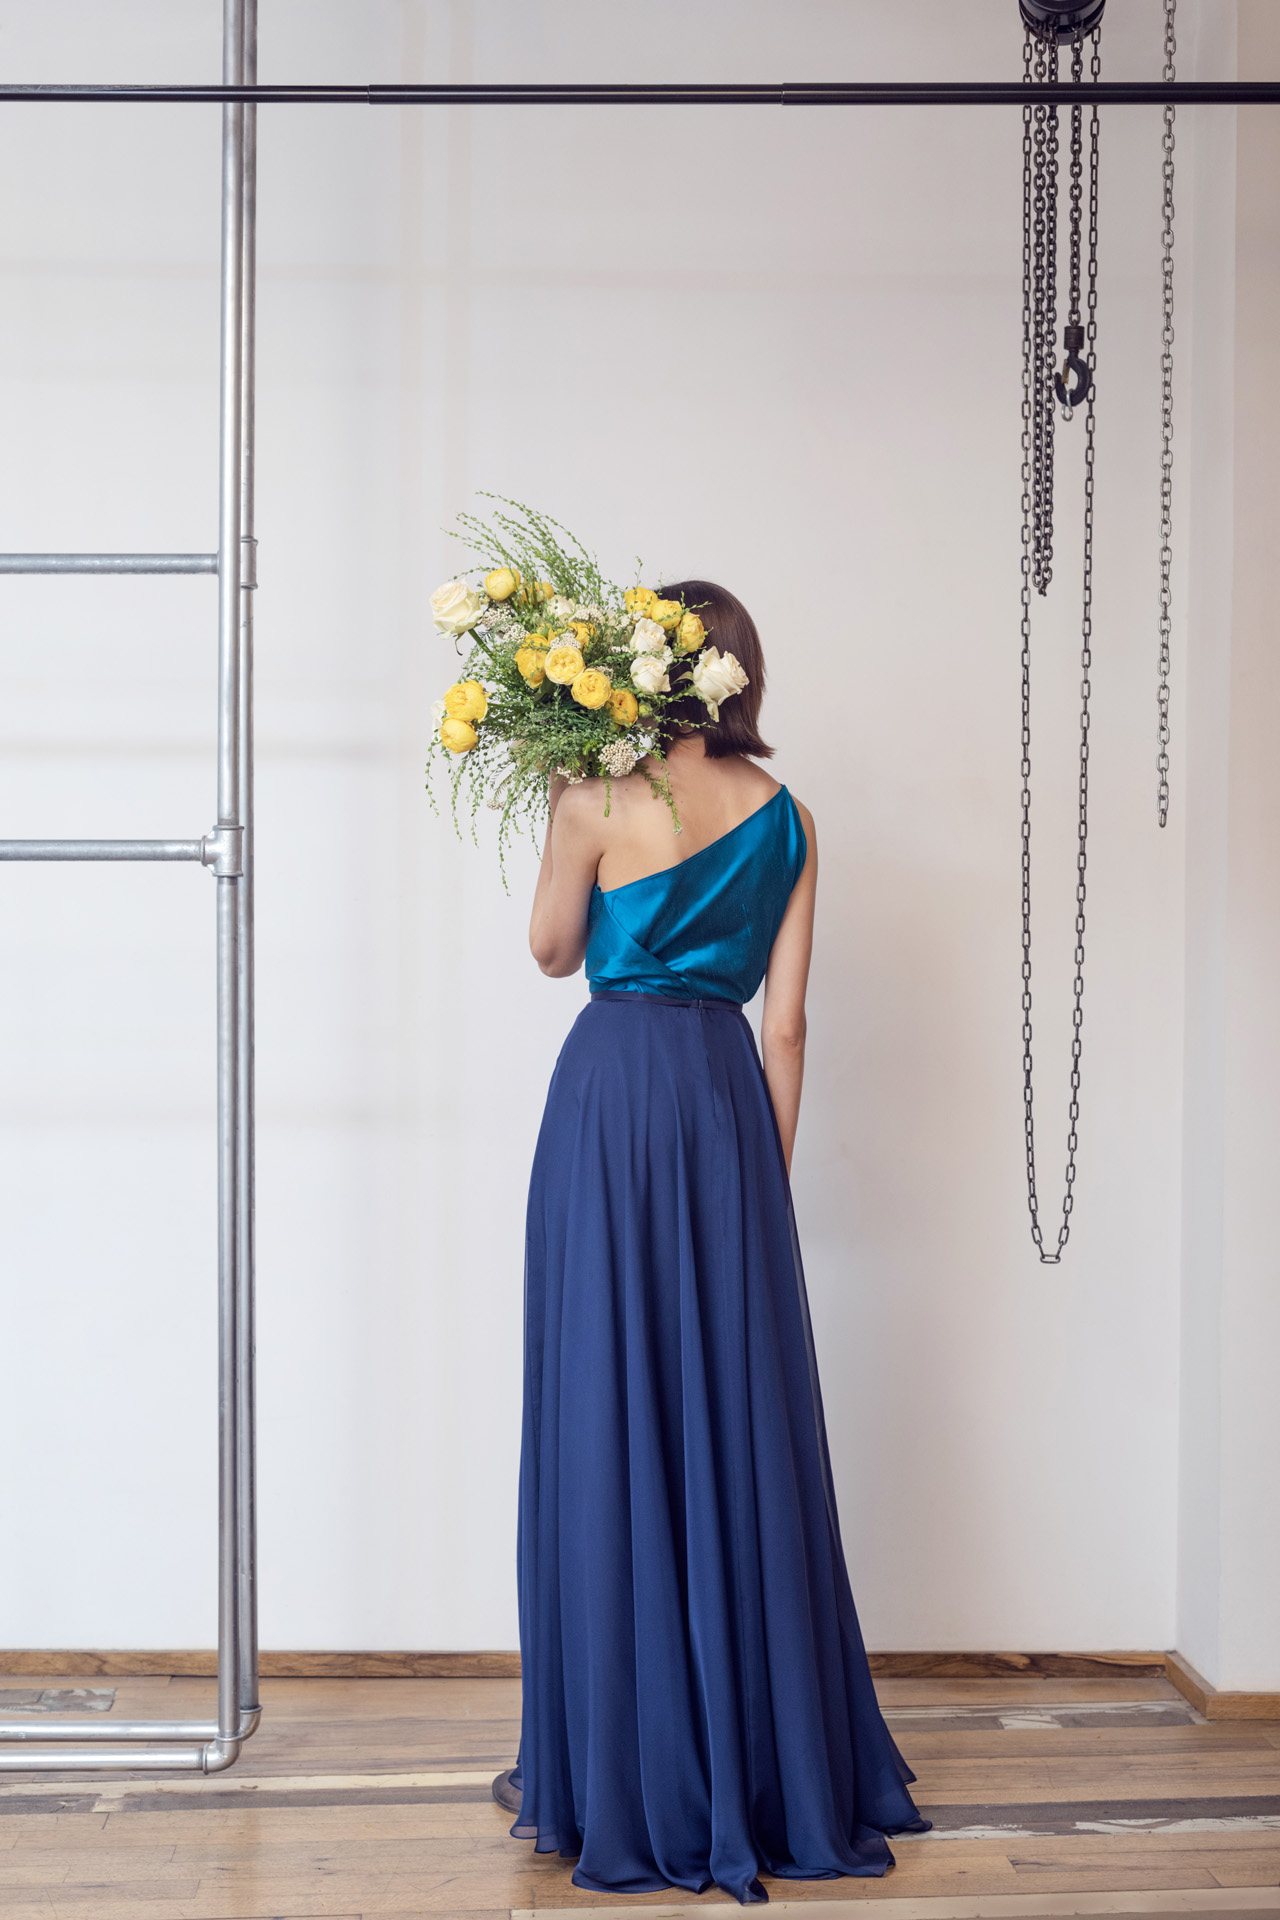 Lara Khoury | LK Stripped | Capsule 1-2019 | 15- Mediterranean Blue Taffeta Molded Top and Navy Blue Muslin Drape Skirt 2.jpg